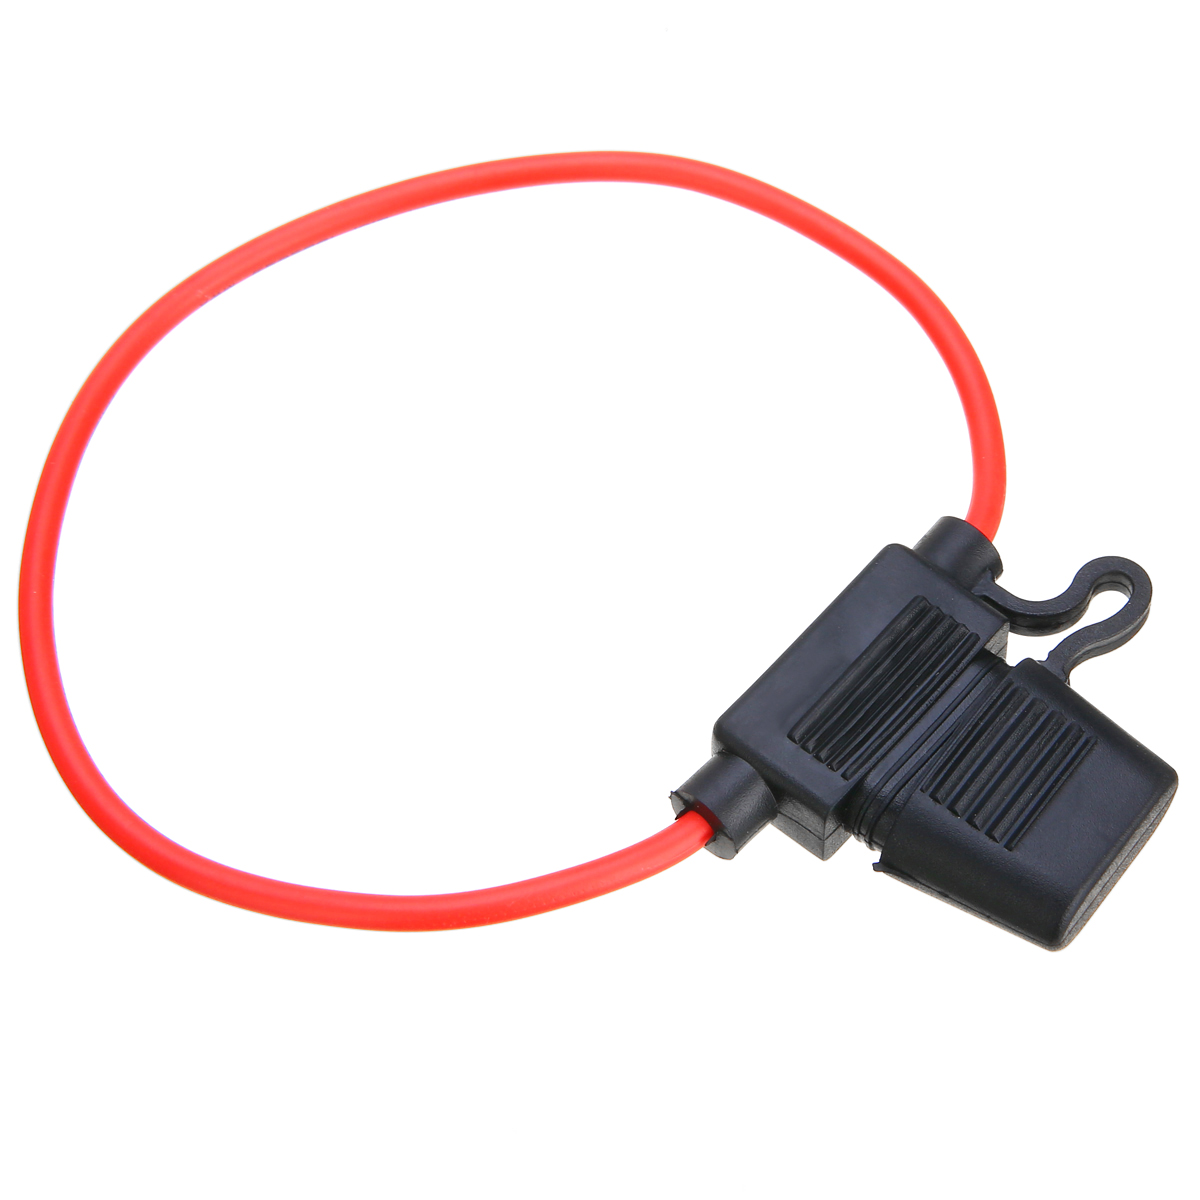 1pc Waterproof 14AWG Copper WireIn line Car Automotive Blade Fuse Holder Fuseholder 20A High Quality in Fuses from Home Improvement